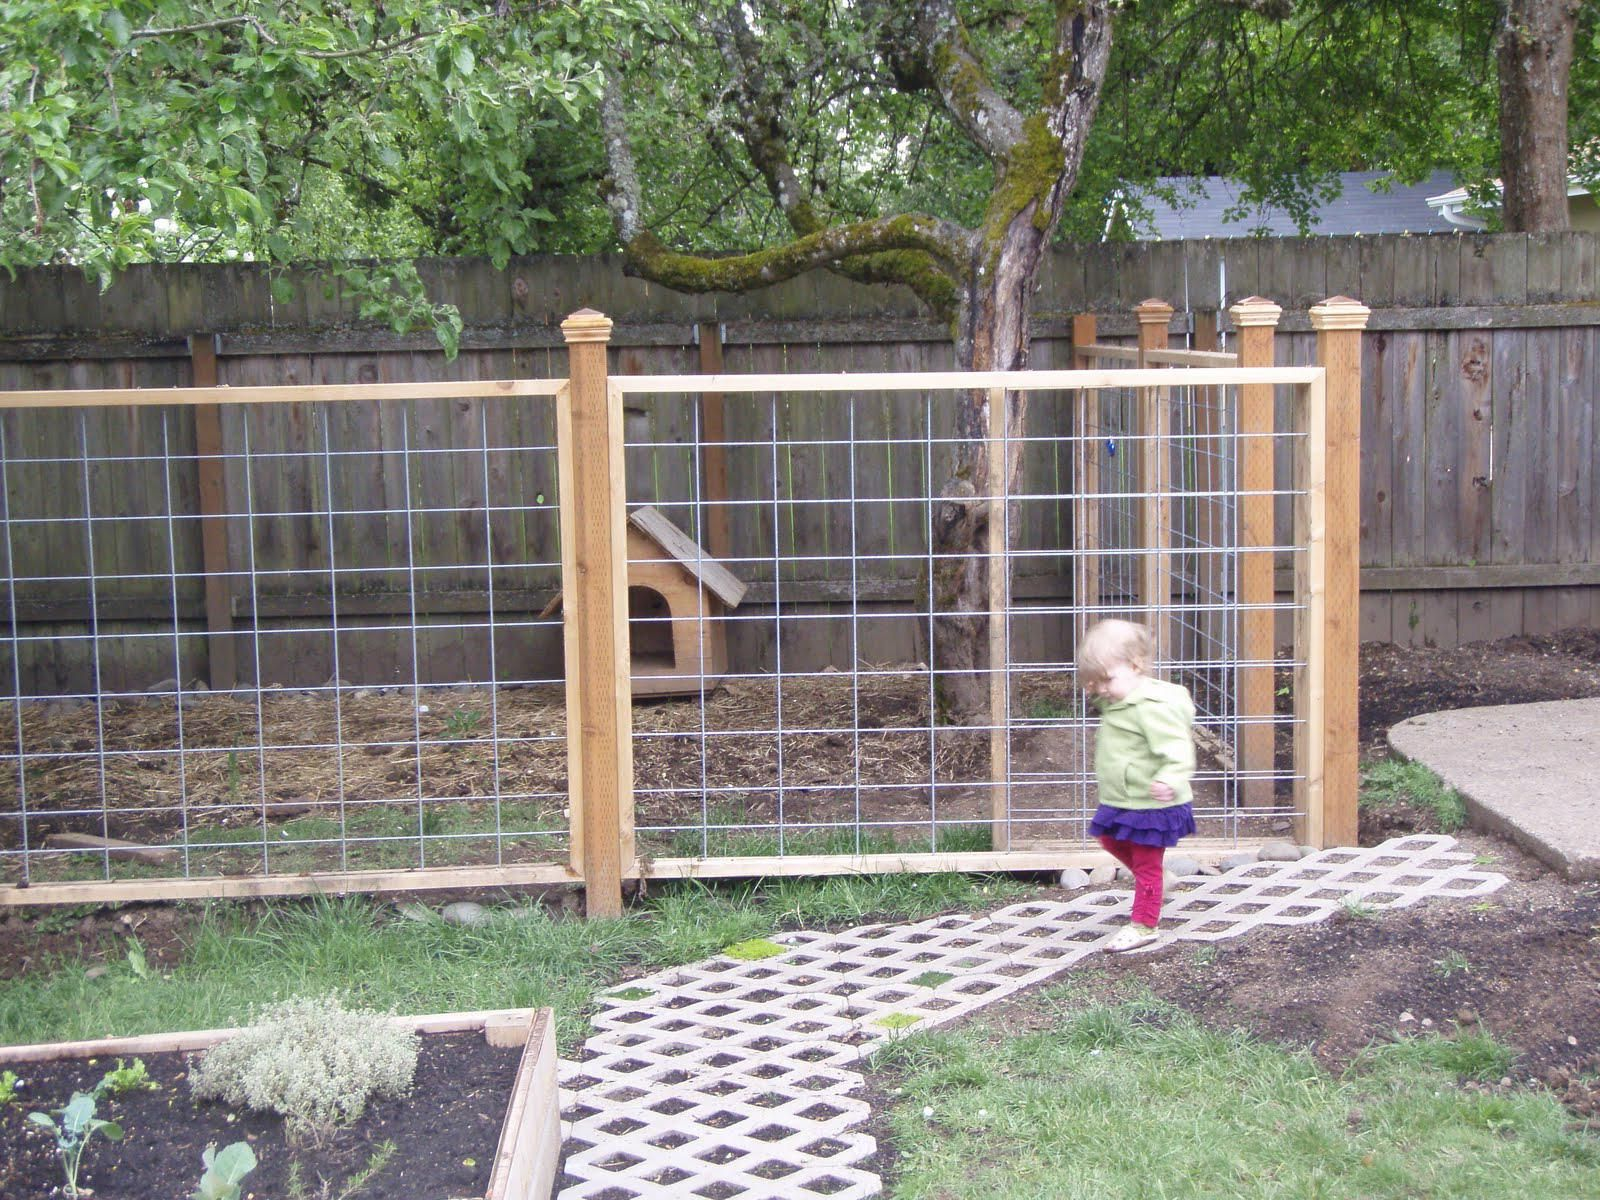 View source image | Dog backyard, Backyard fences, Dog fence